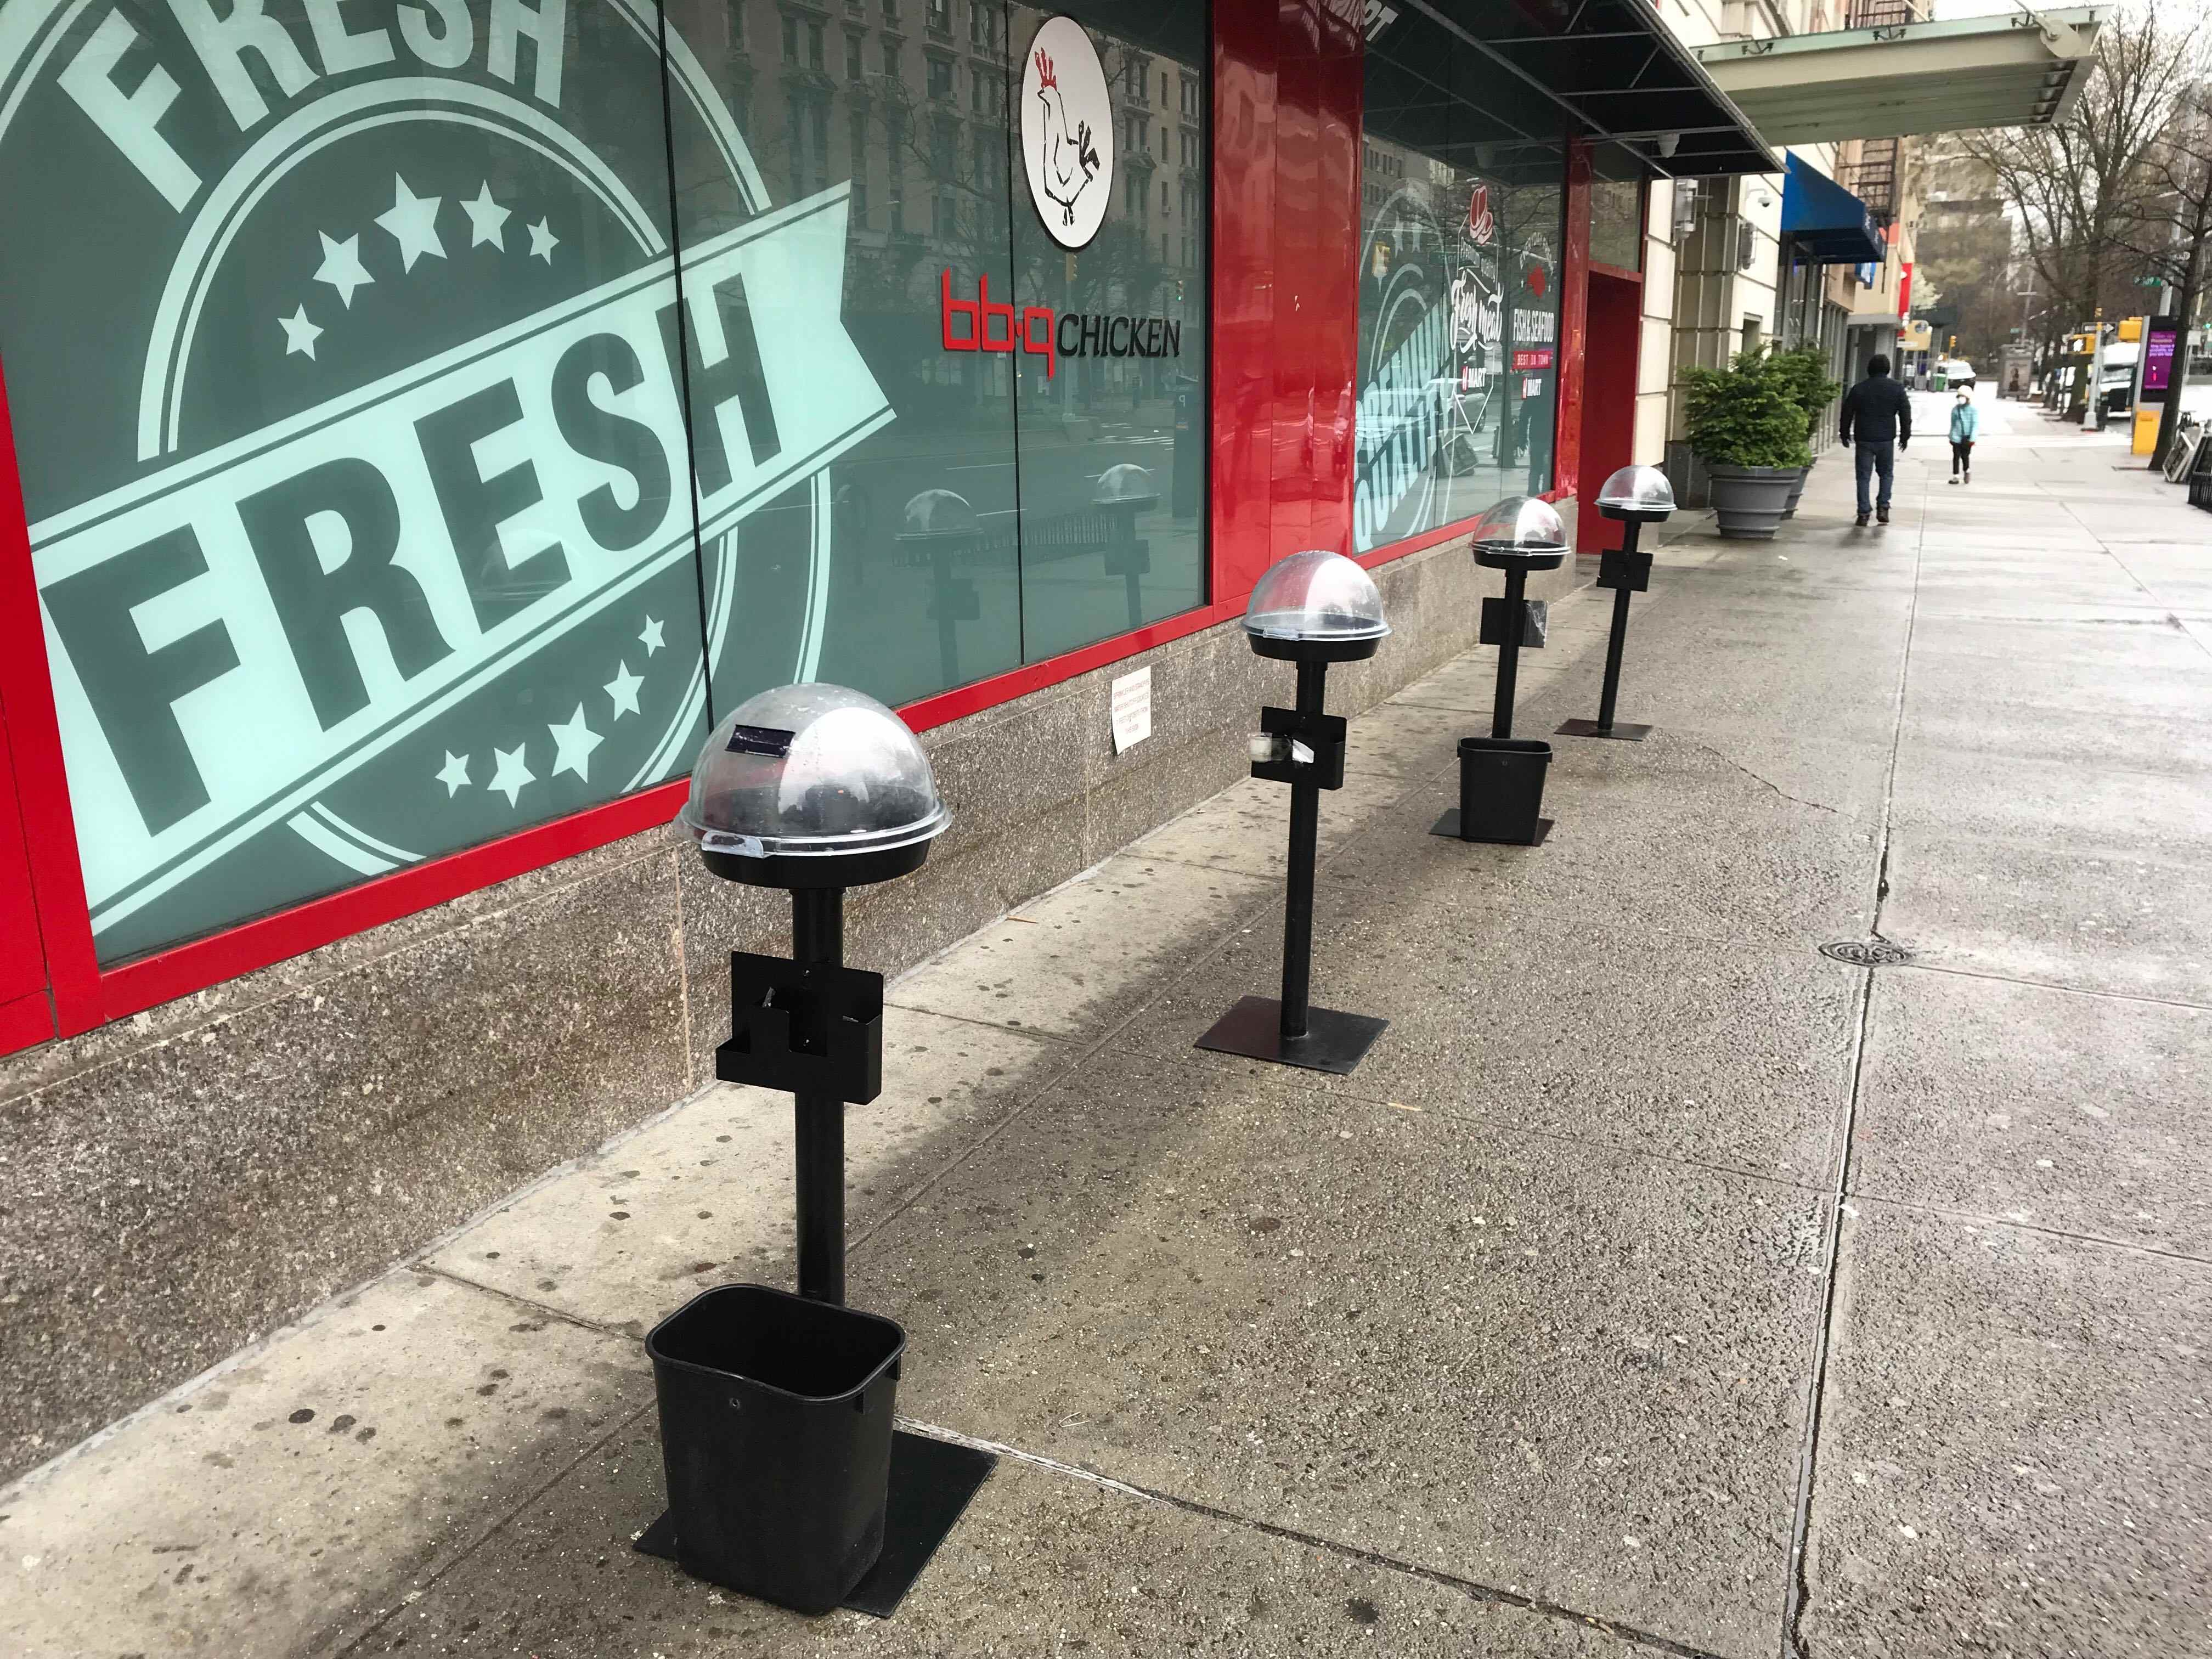 One-way aisles are coming to a Walmart near you. Social distancing meters at an NYC grocer via Morning Brew's Neal Freyman